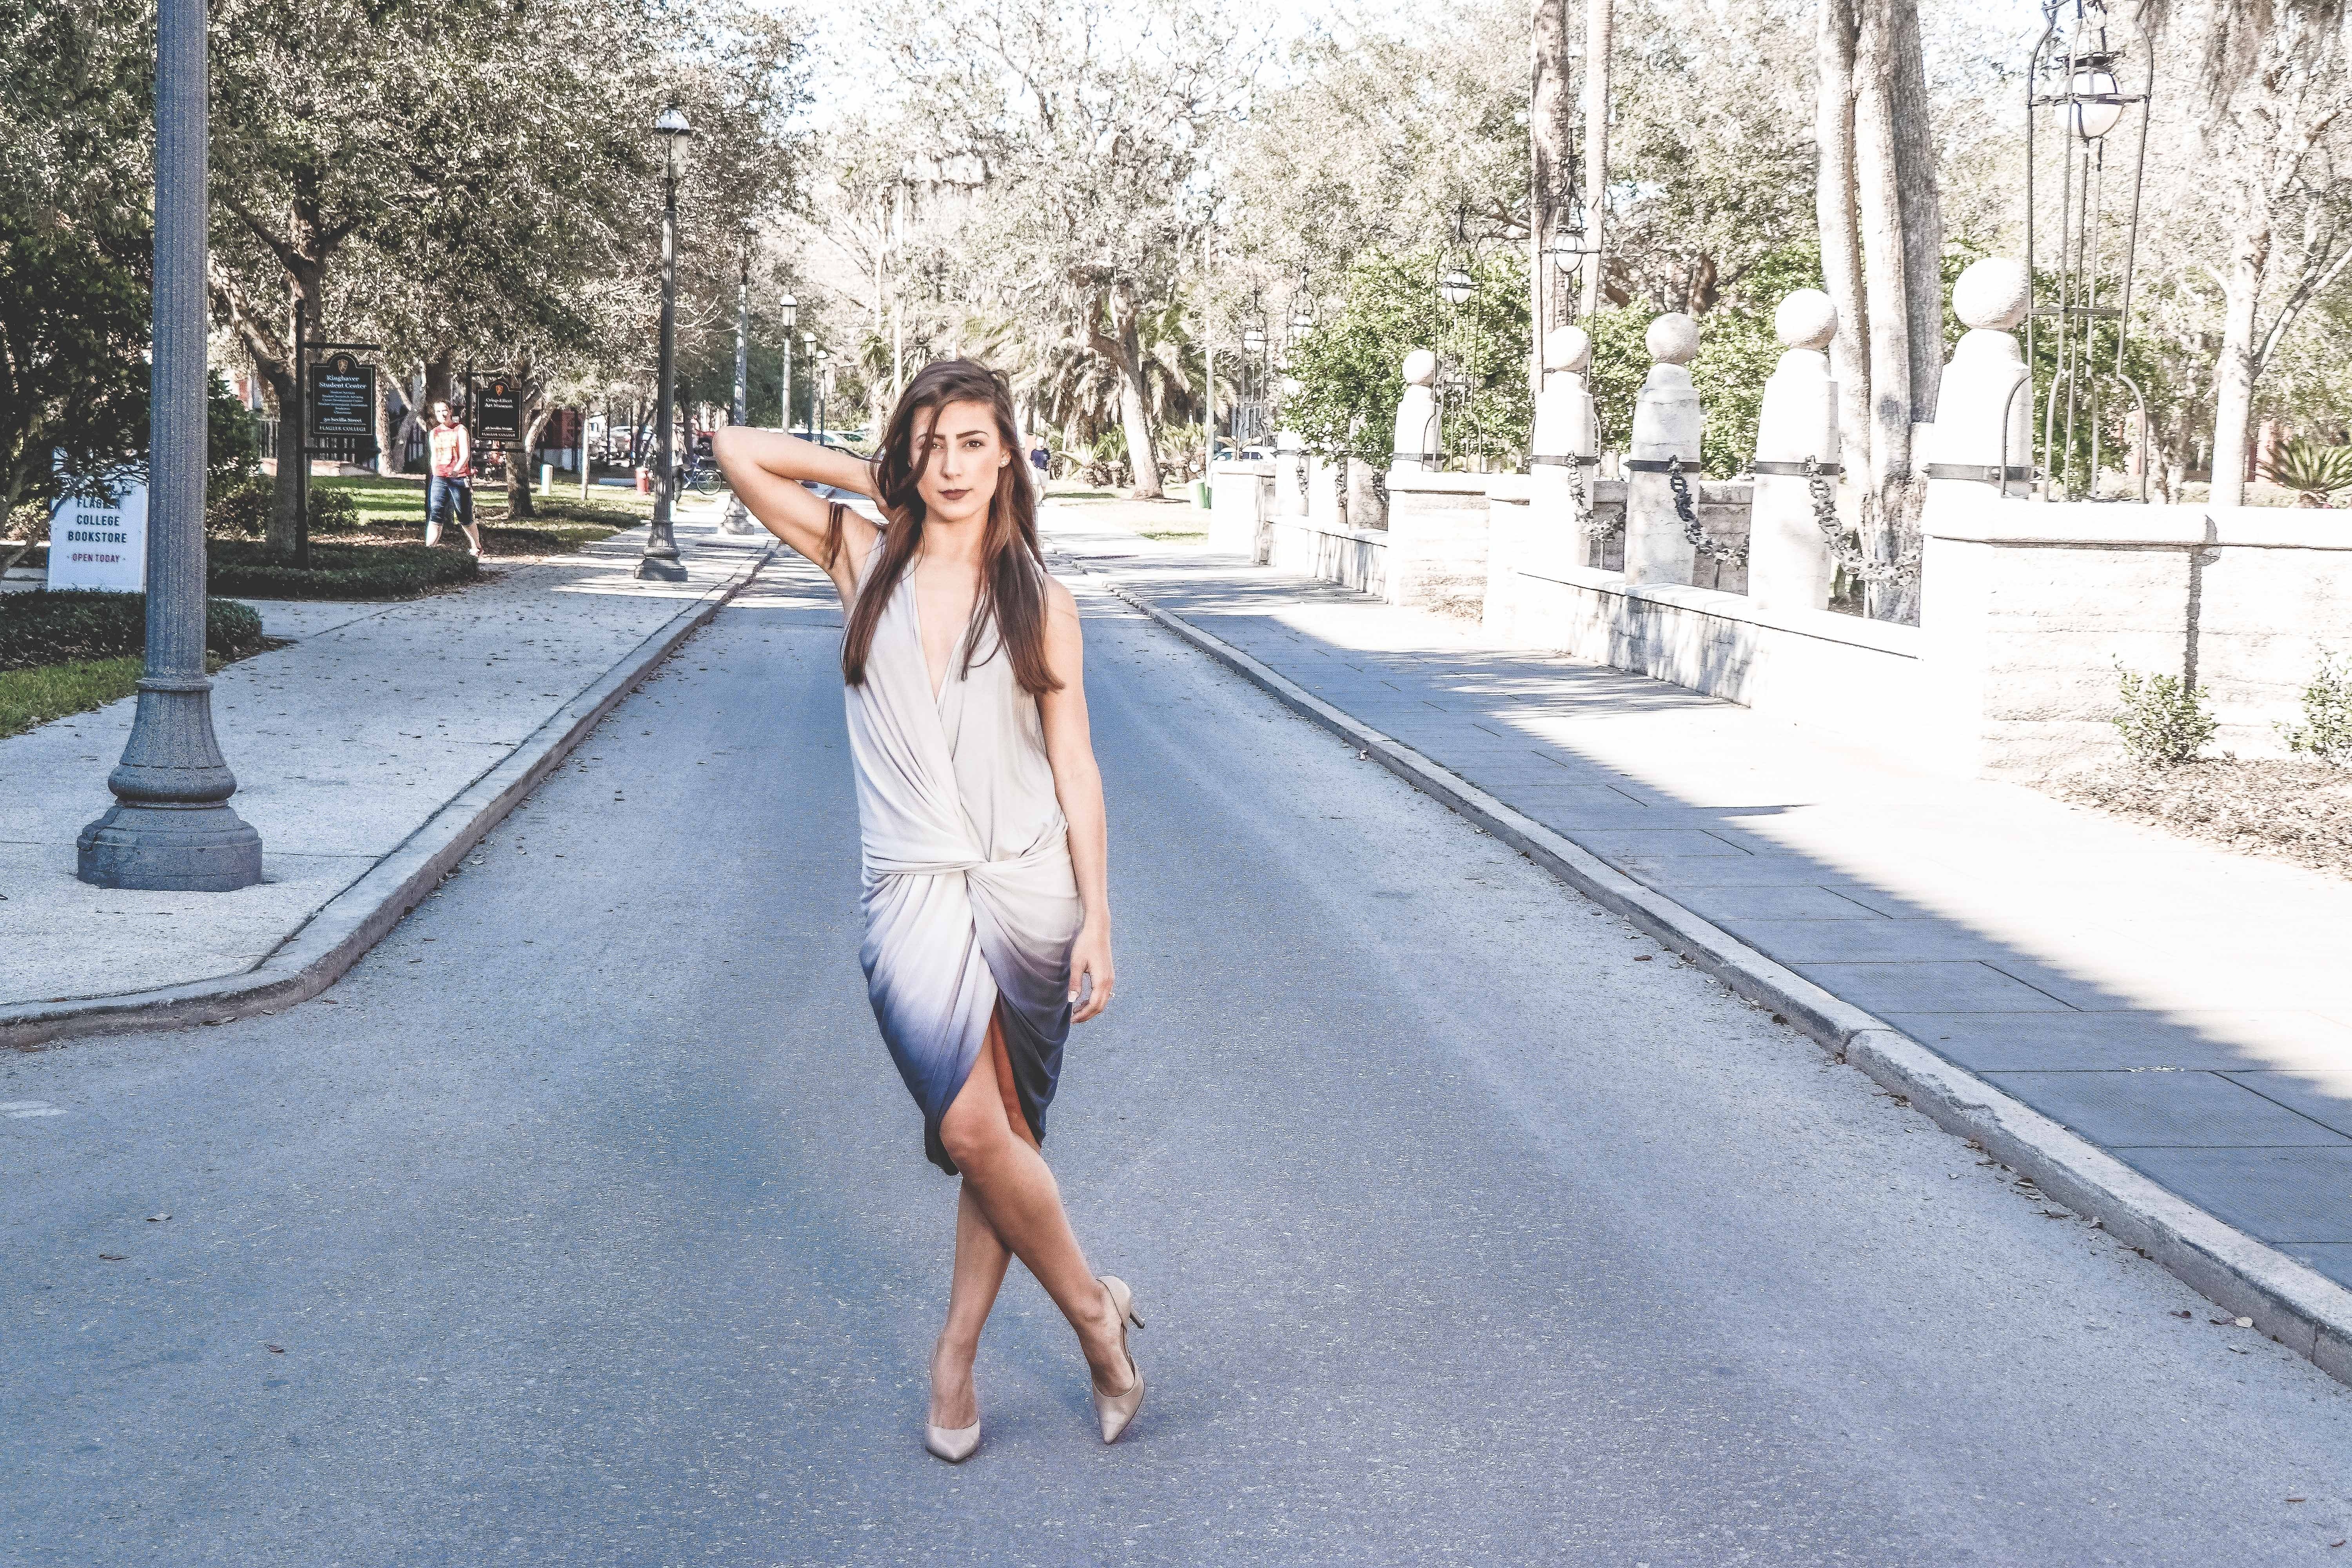 Woman Standing on Street With Cross Leg, Adult, Pavement, Wear, Travel, HQ Photo